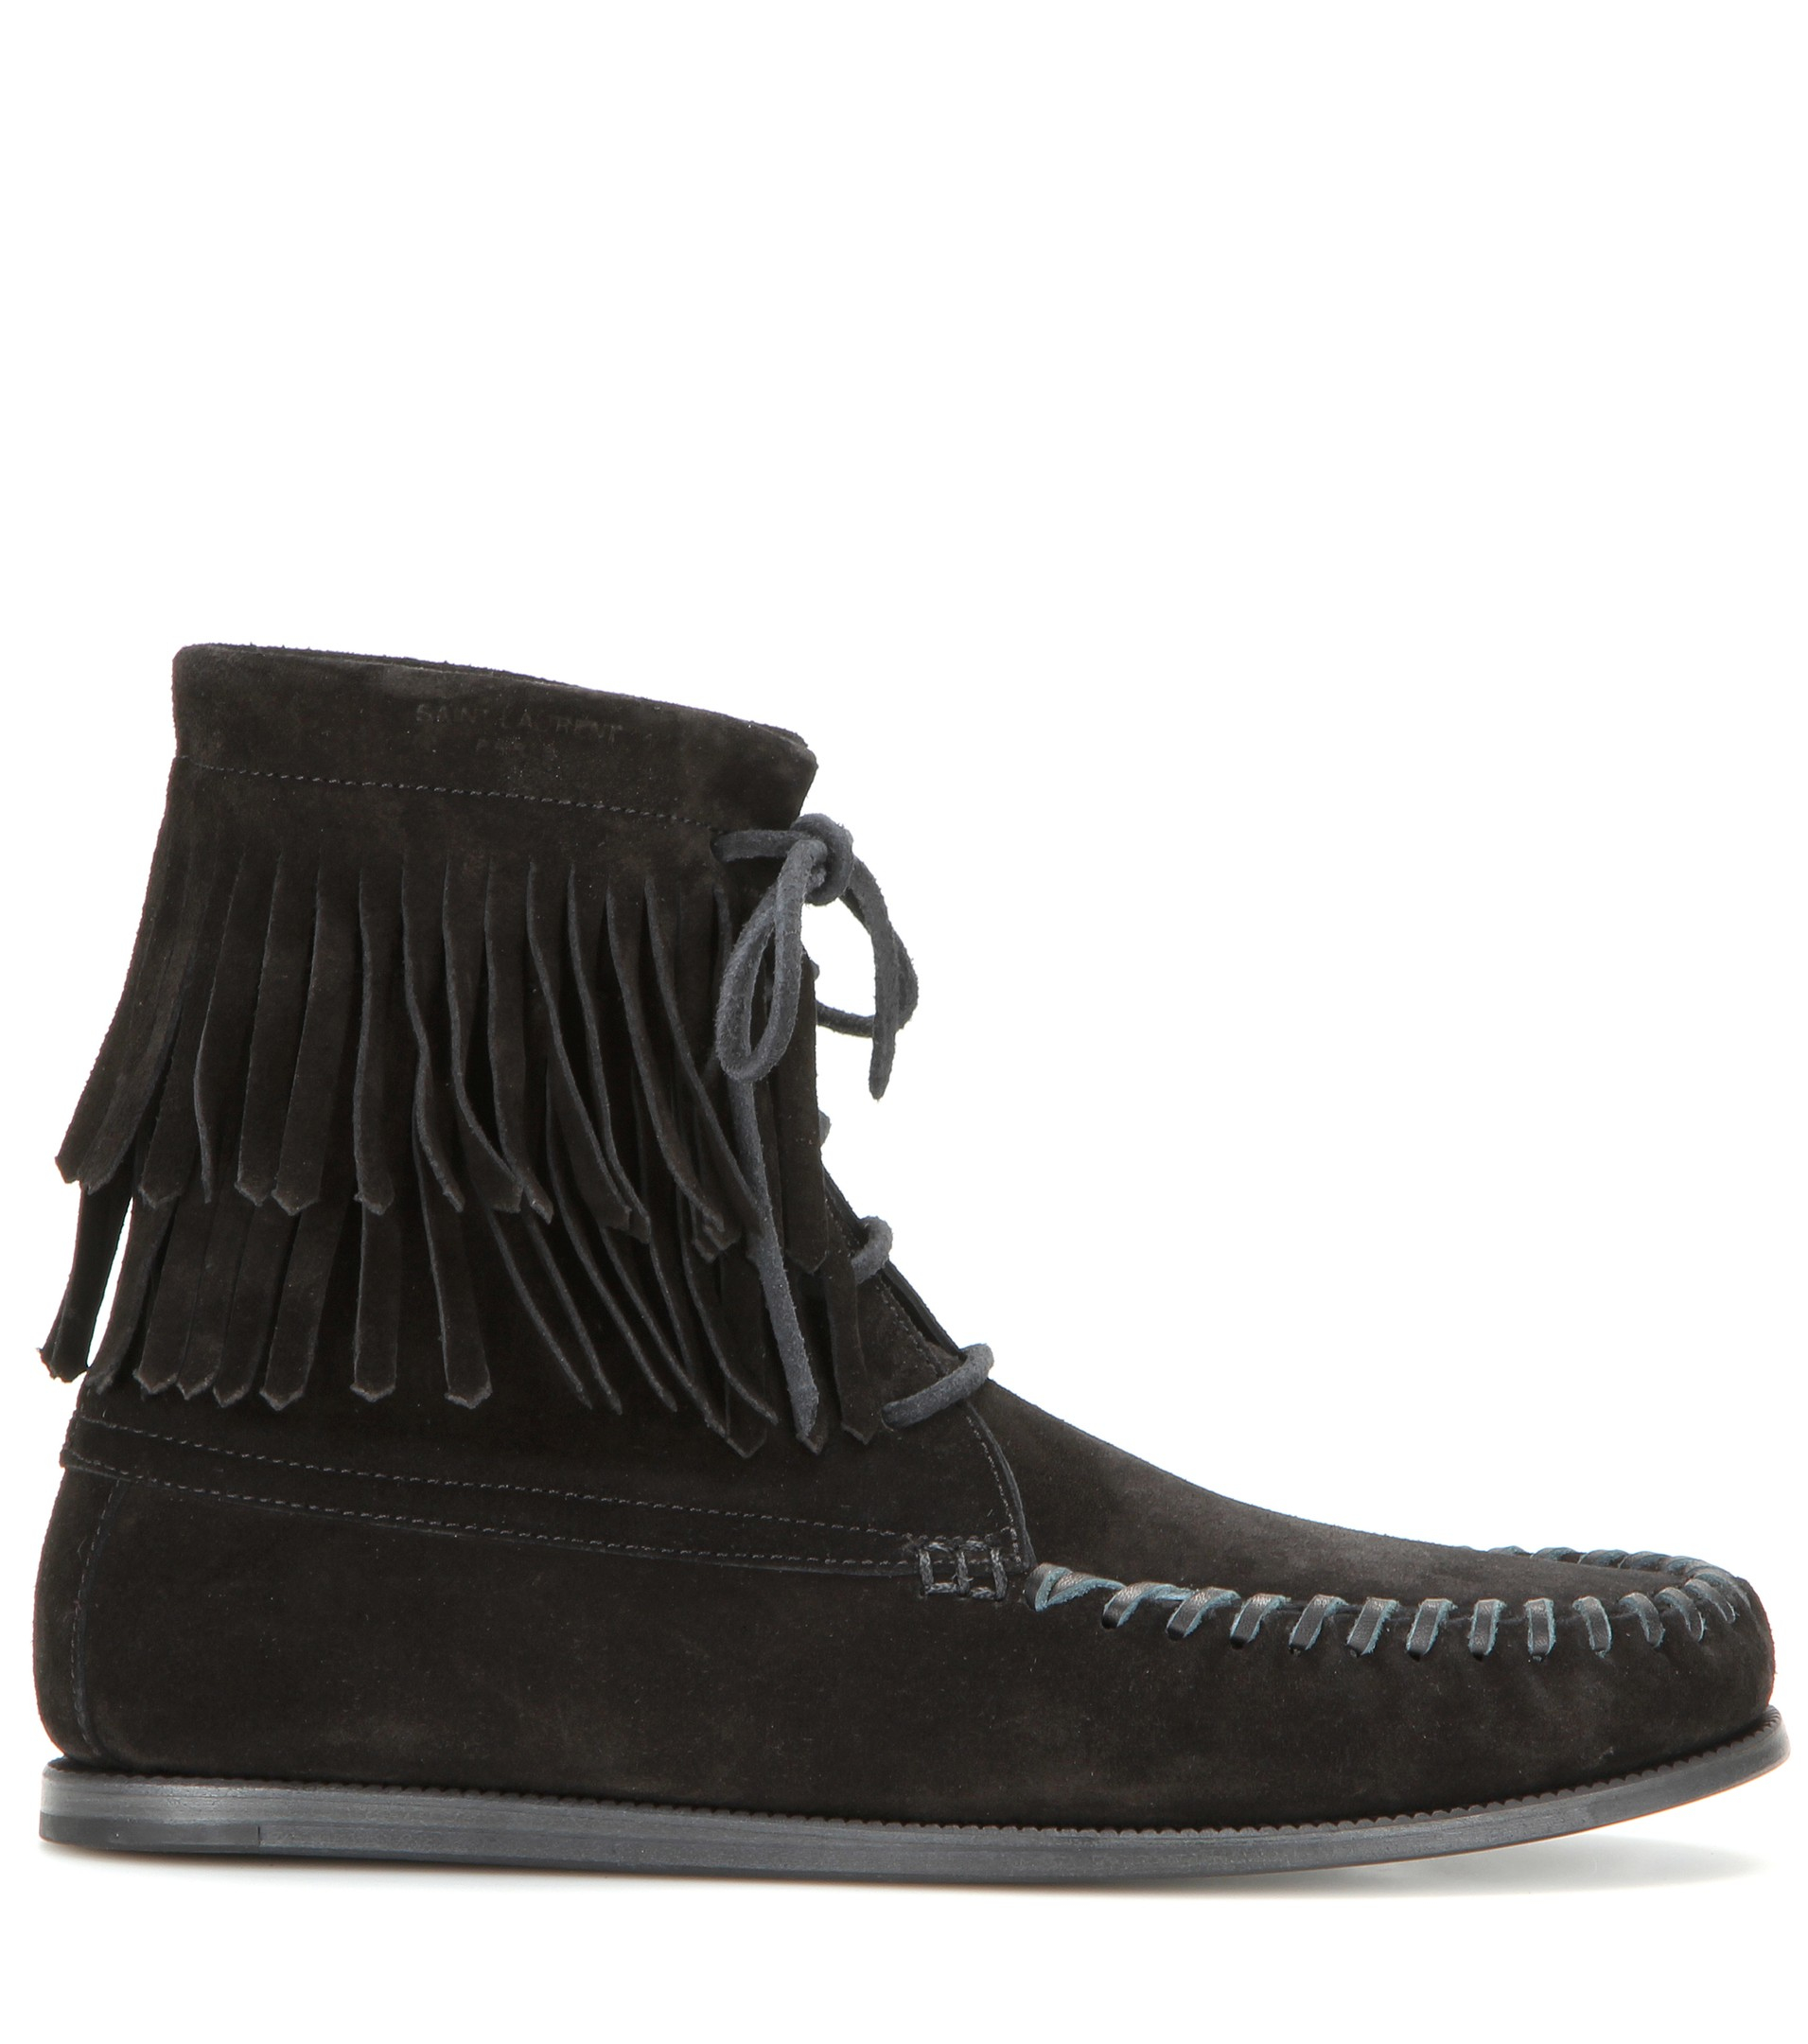 Saint Laurent Suede Fringe Ankle Boots with credit card cheap price free shipping cheap quality ujdjti7Lel